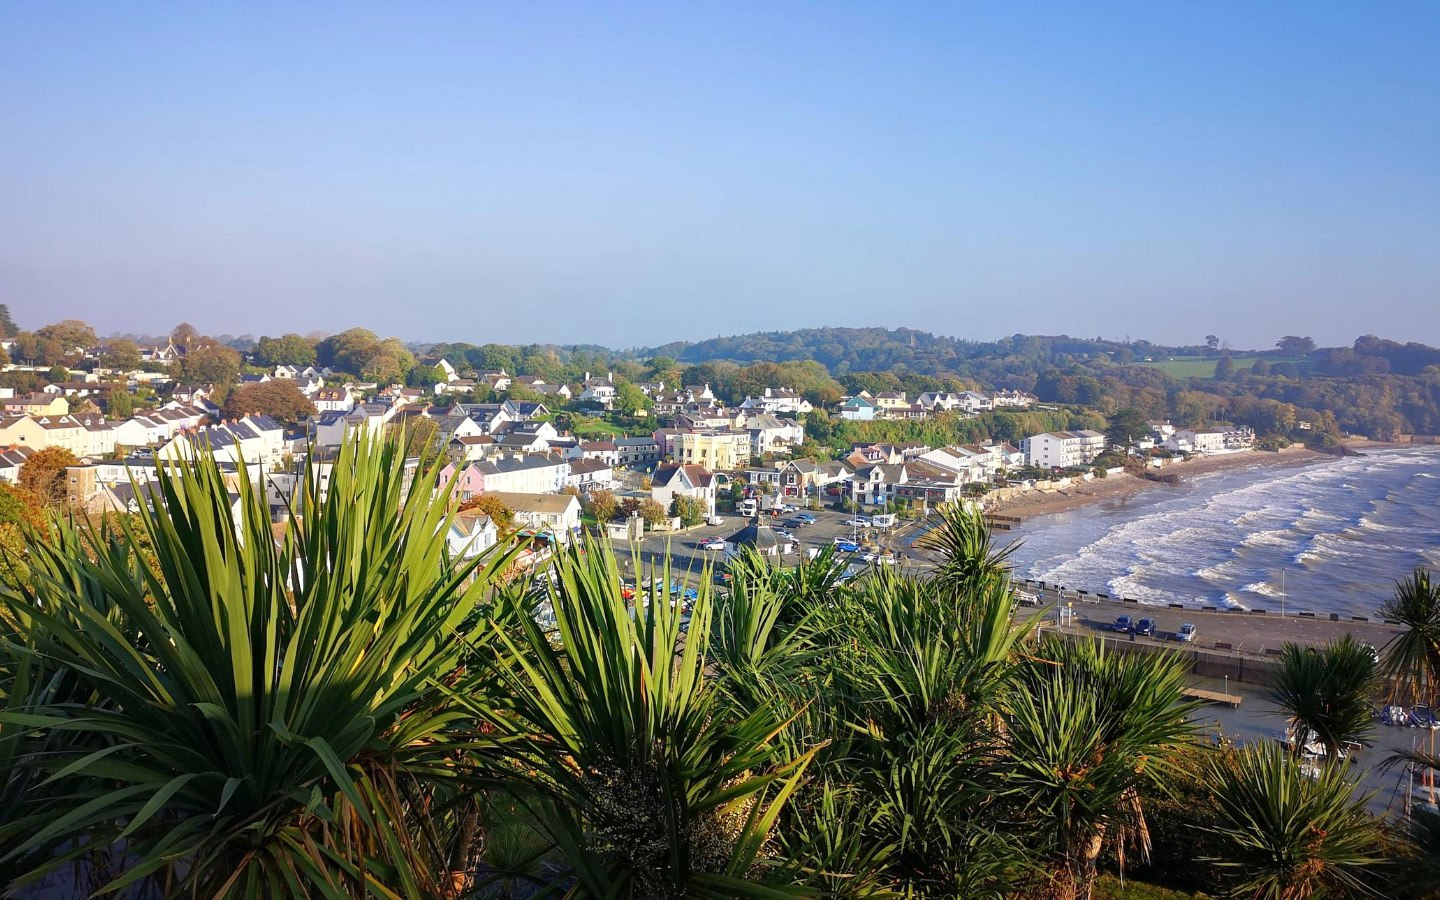 A legendary South Wales road trip itinerary